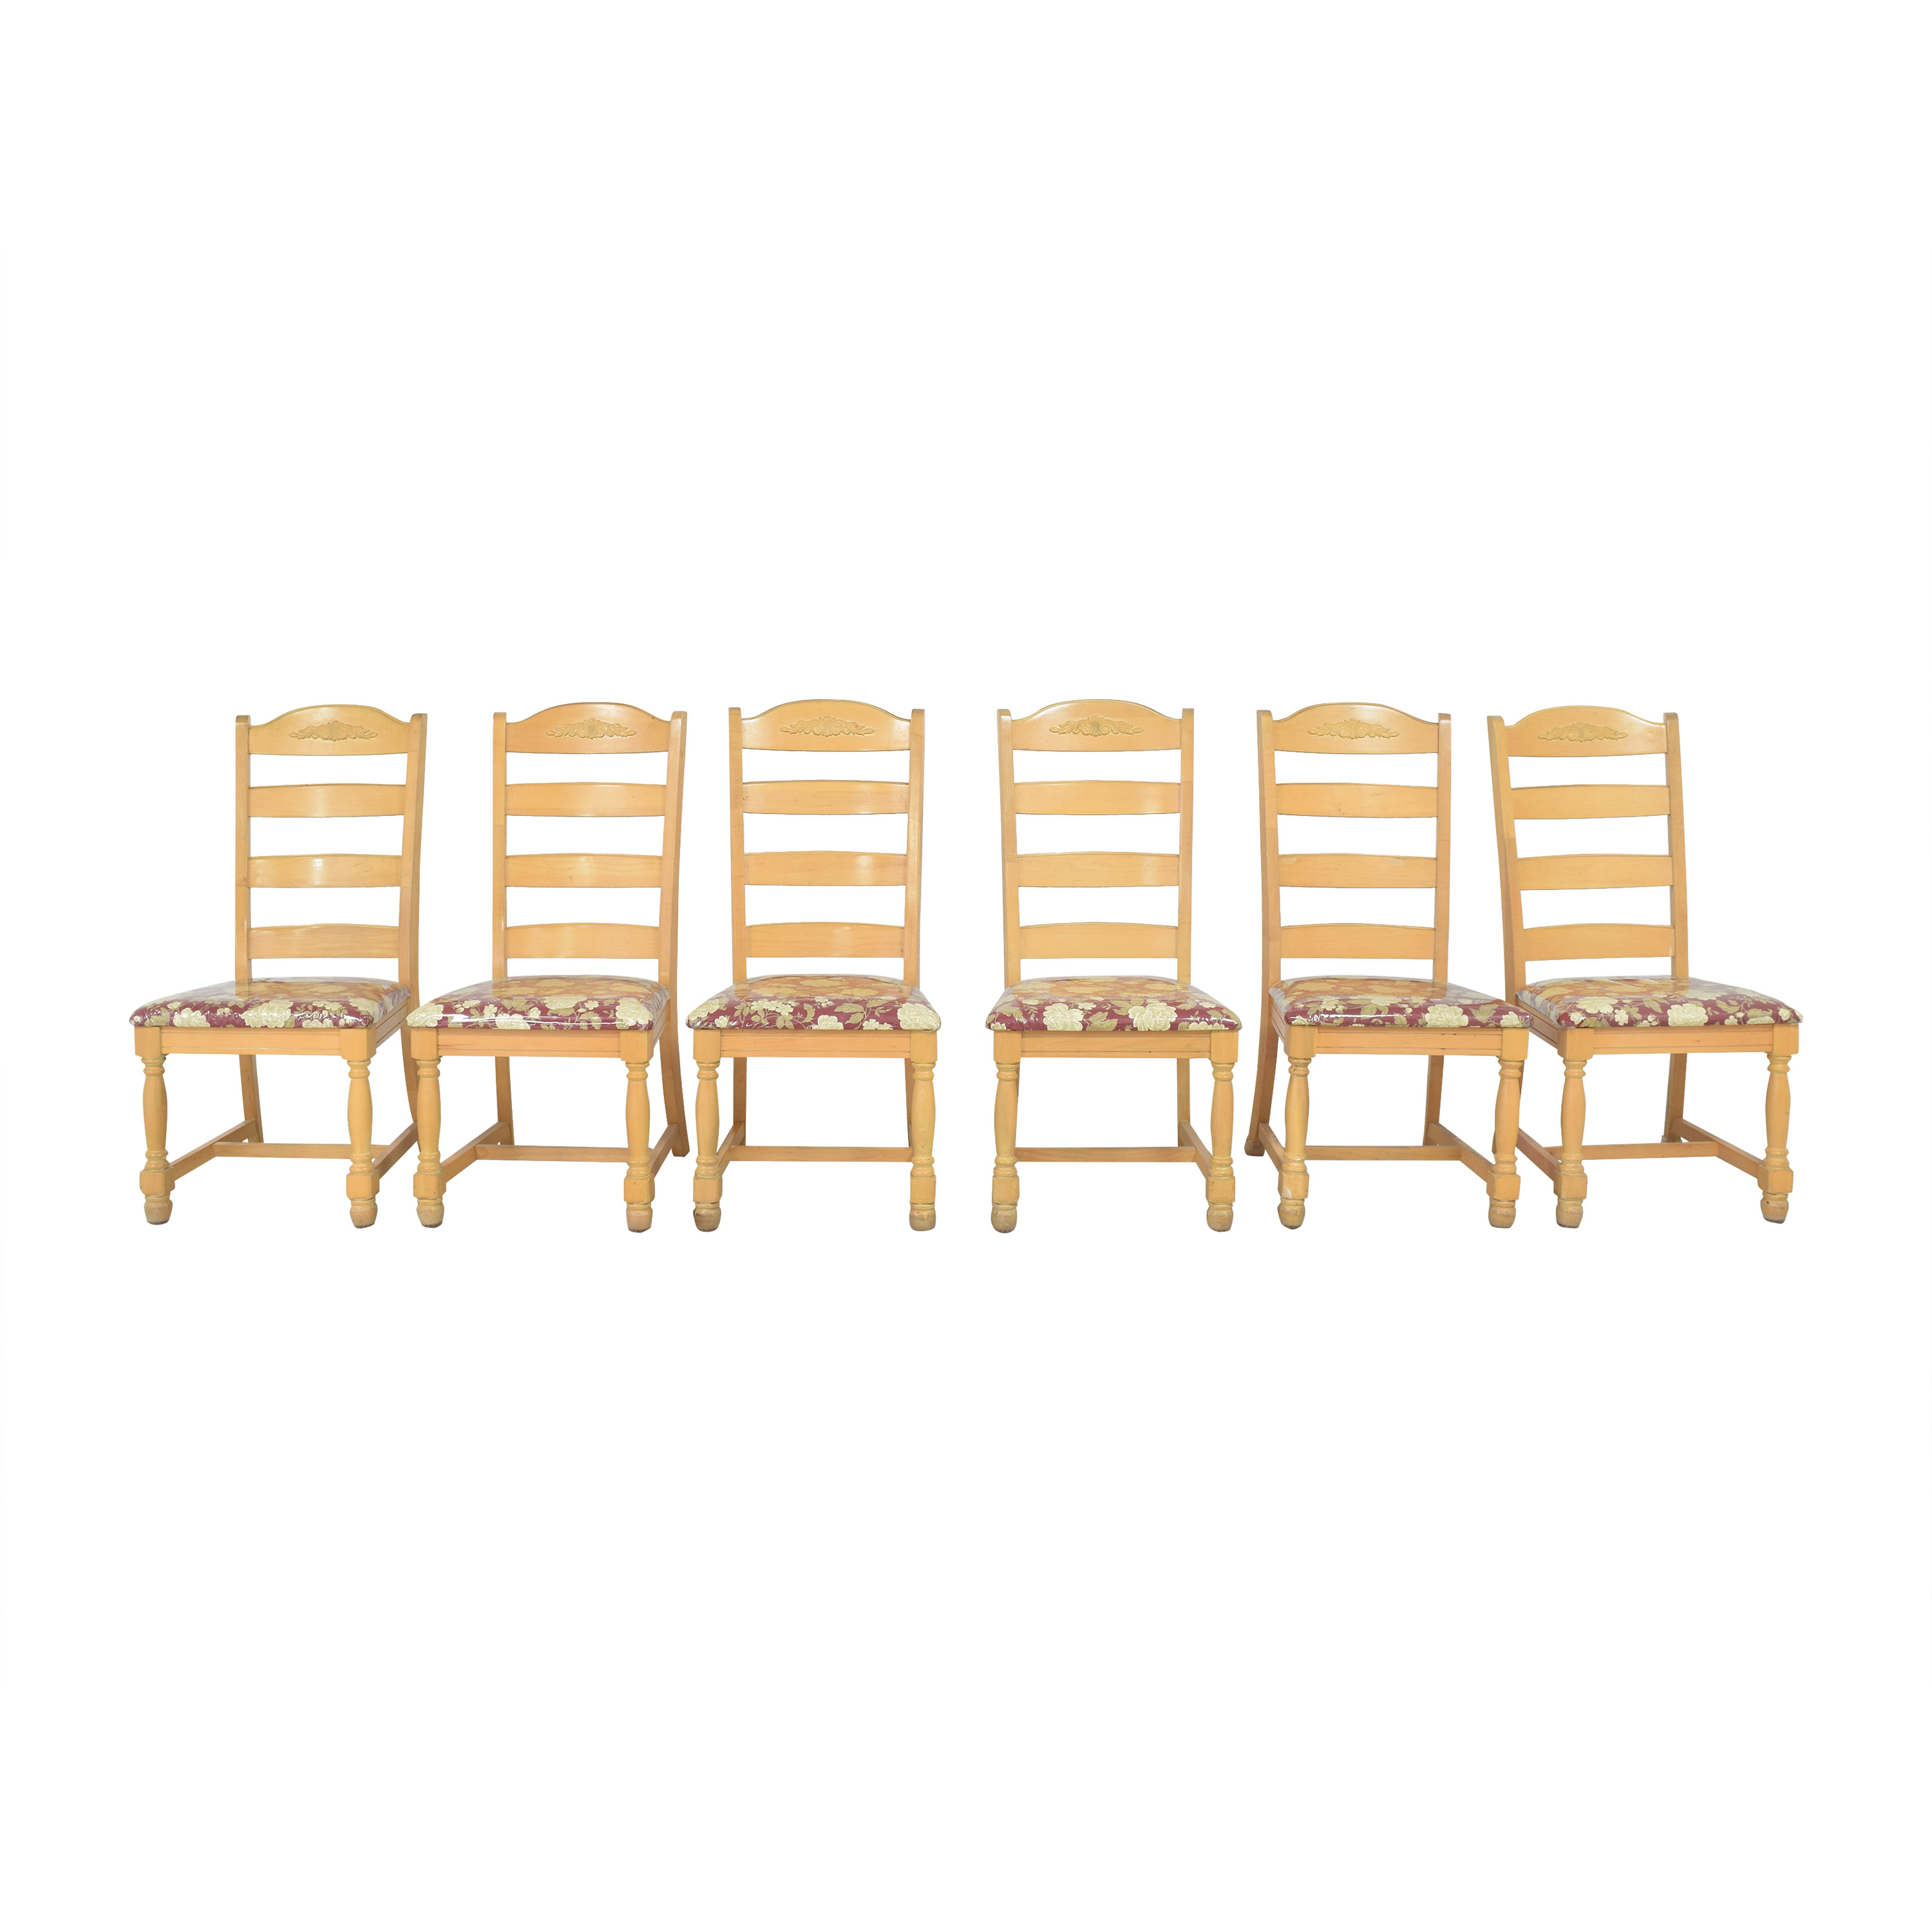 Broyhill Ladderback Dining Chairs sale